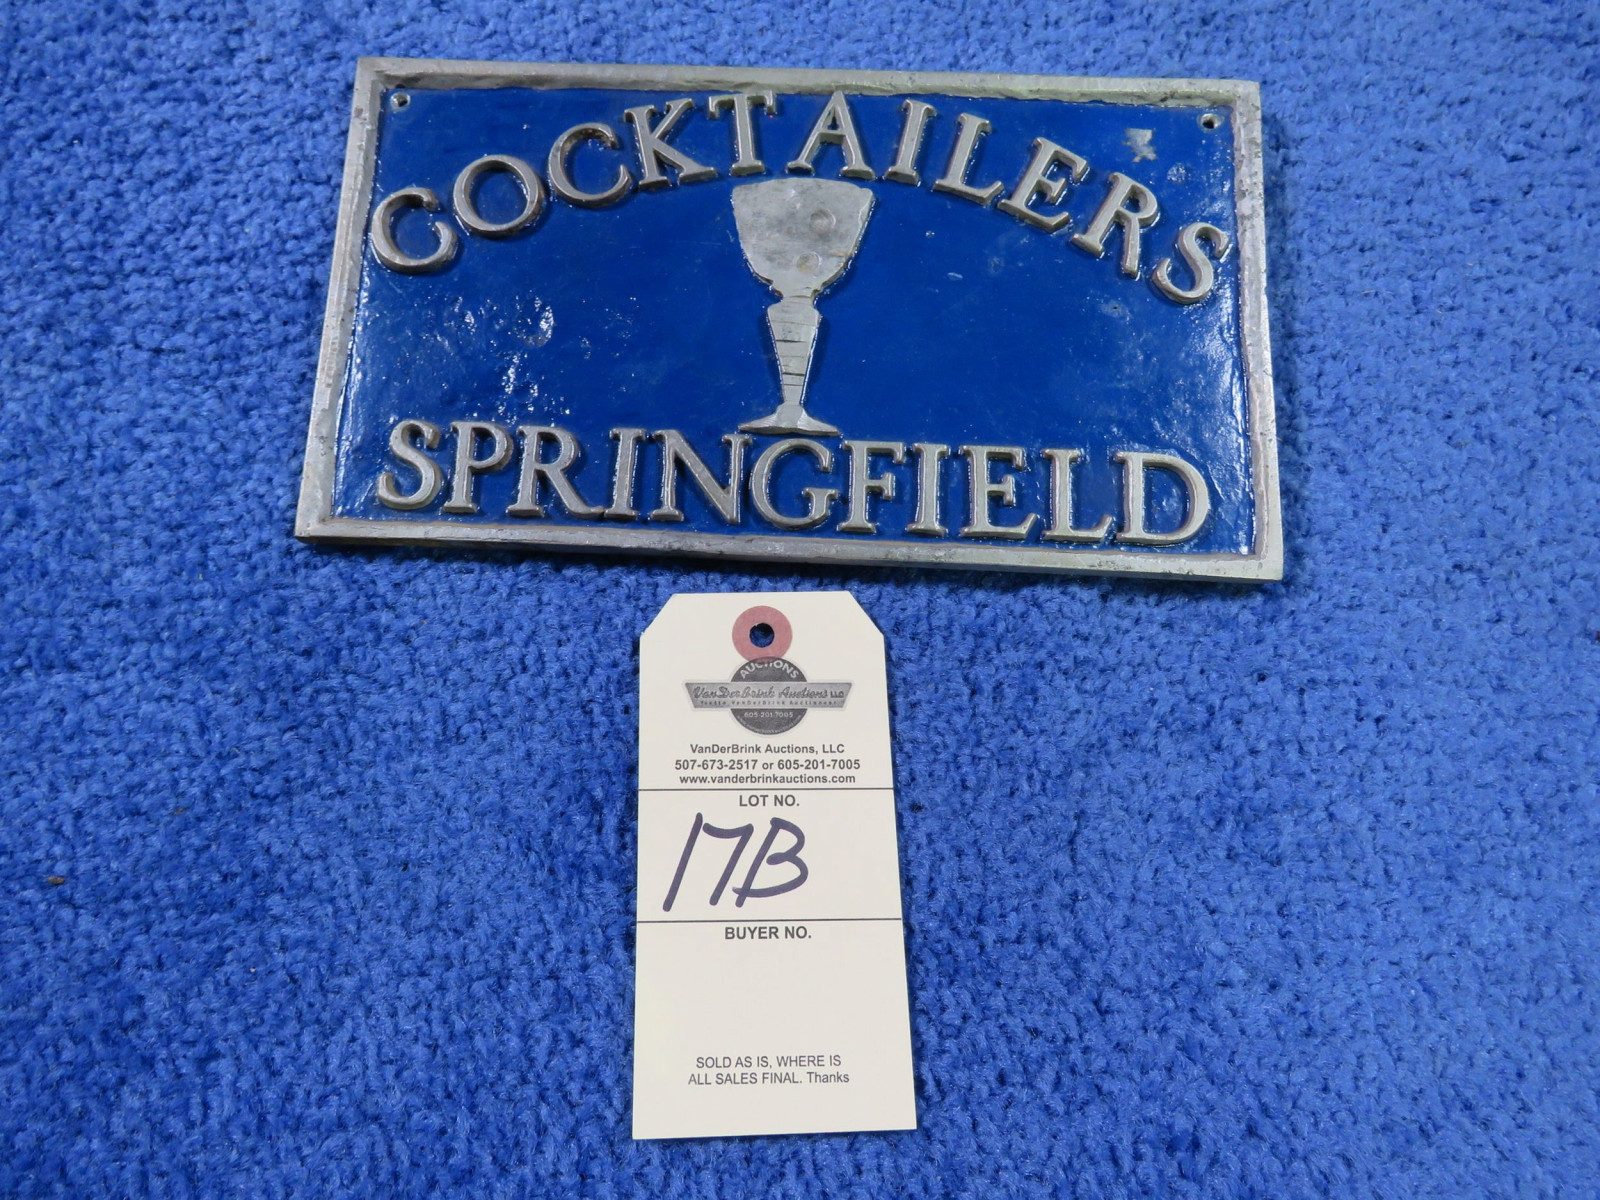 Vintage Cocktails Springfield, Missouri Vehicle Club Plate - Image 1